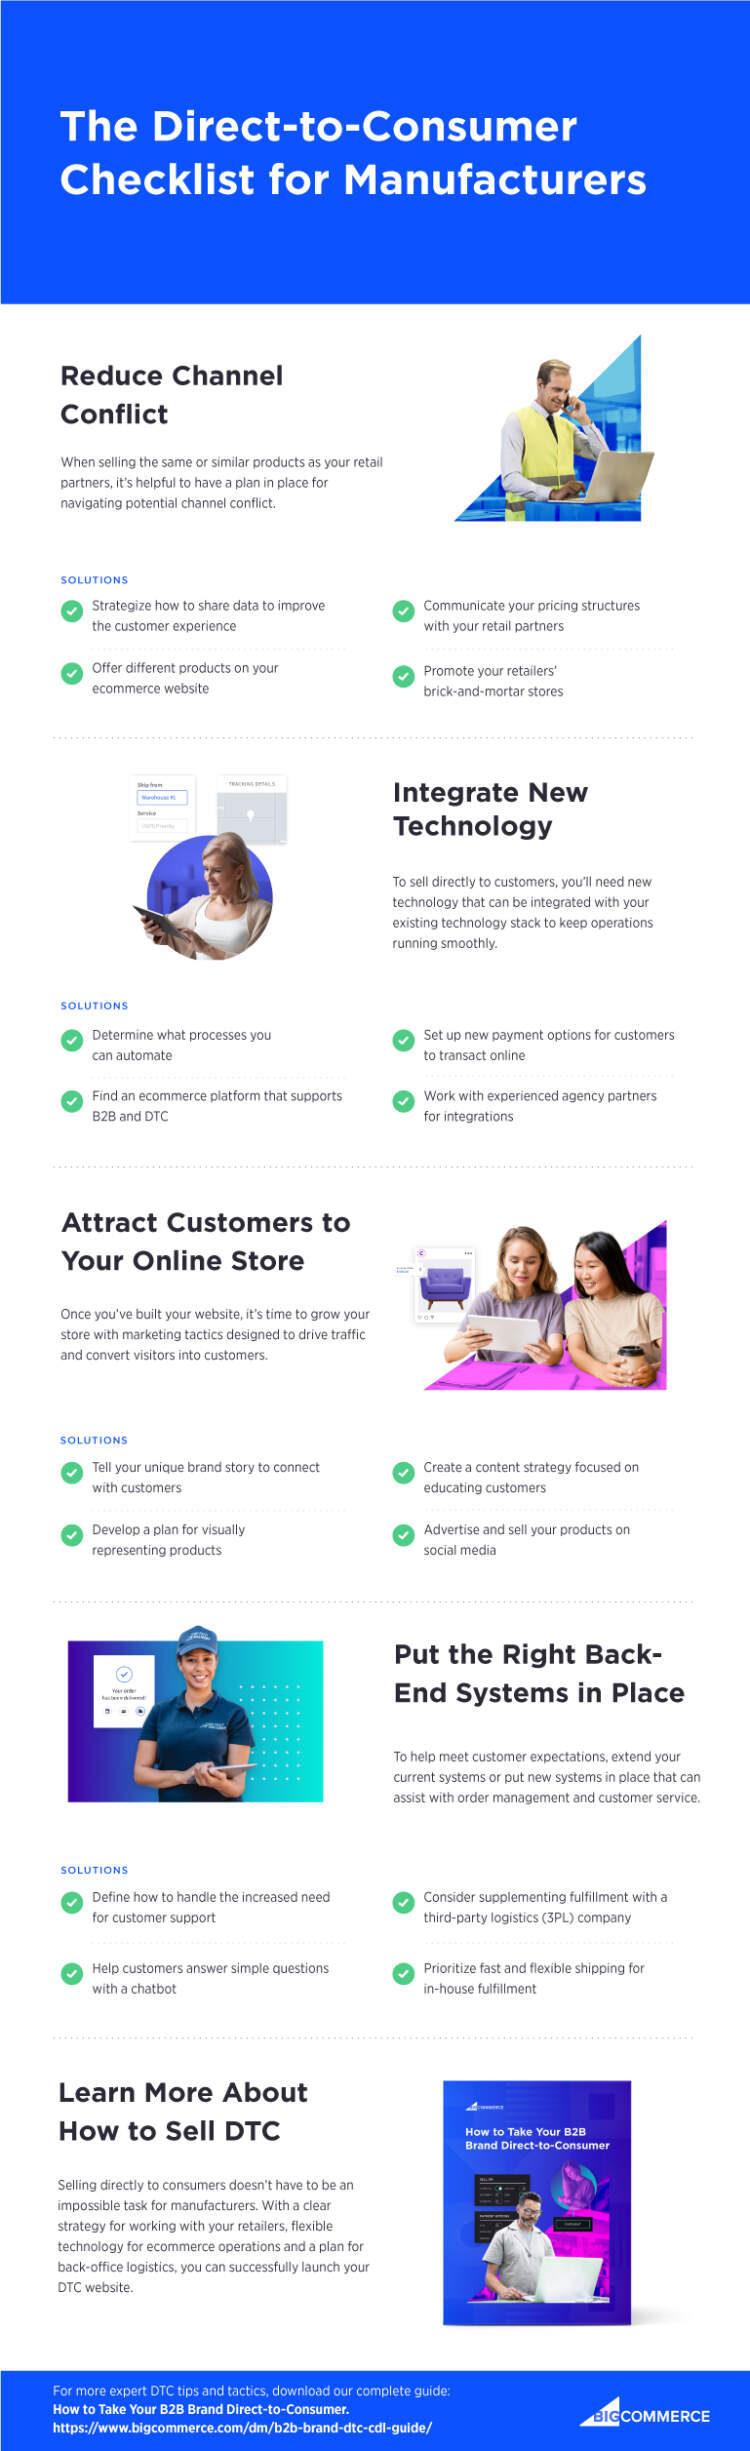 Direct-to-consumer checklist for manufacturers: reduce channel conflict, integrate new technology, attract customers to your online store, and put the right back-end systems in place.